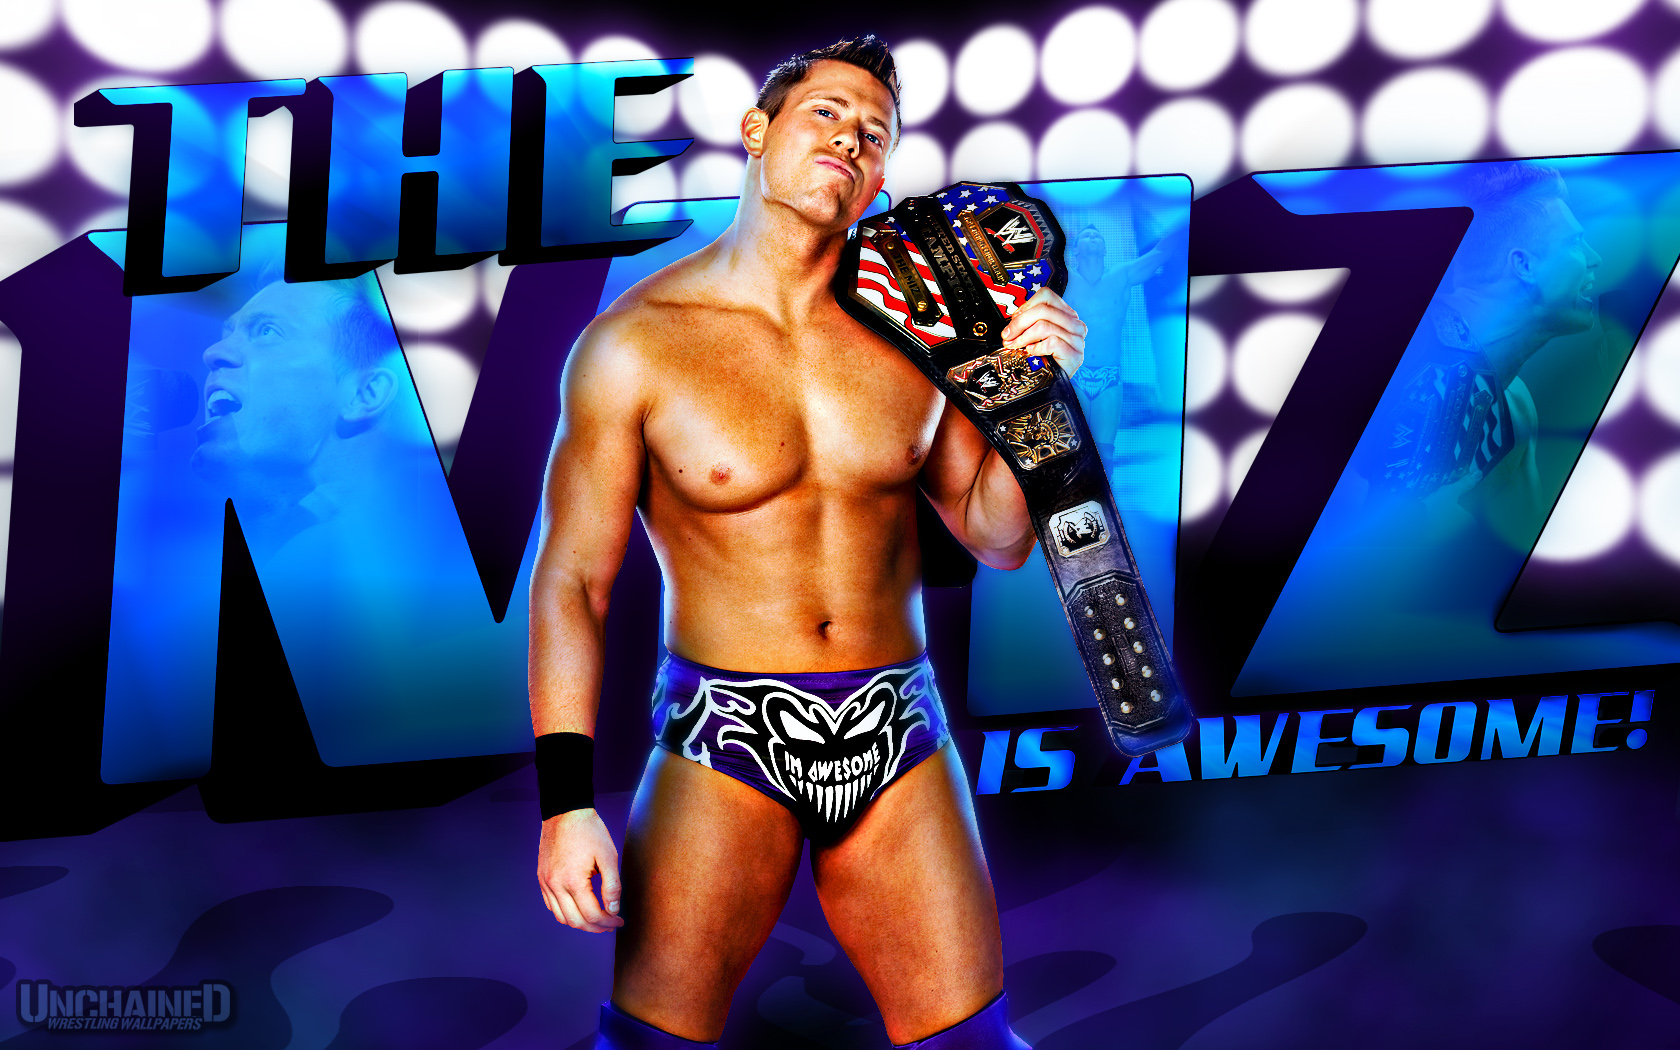 http://images5.fanpop.com/image/photos/25100000/The-Miz-wallpaper-Eli-s-Collection-the-miz-michael-mizanin-25122046-1680-1050.jpg